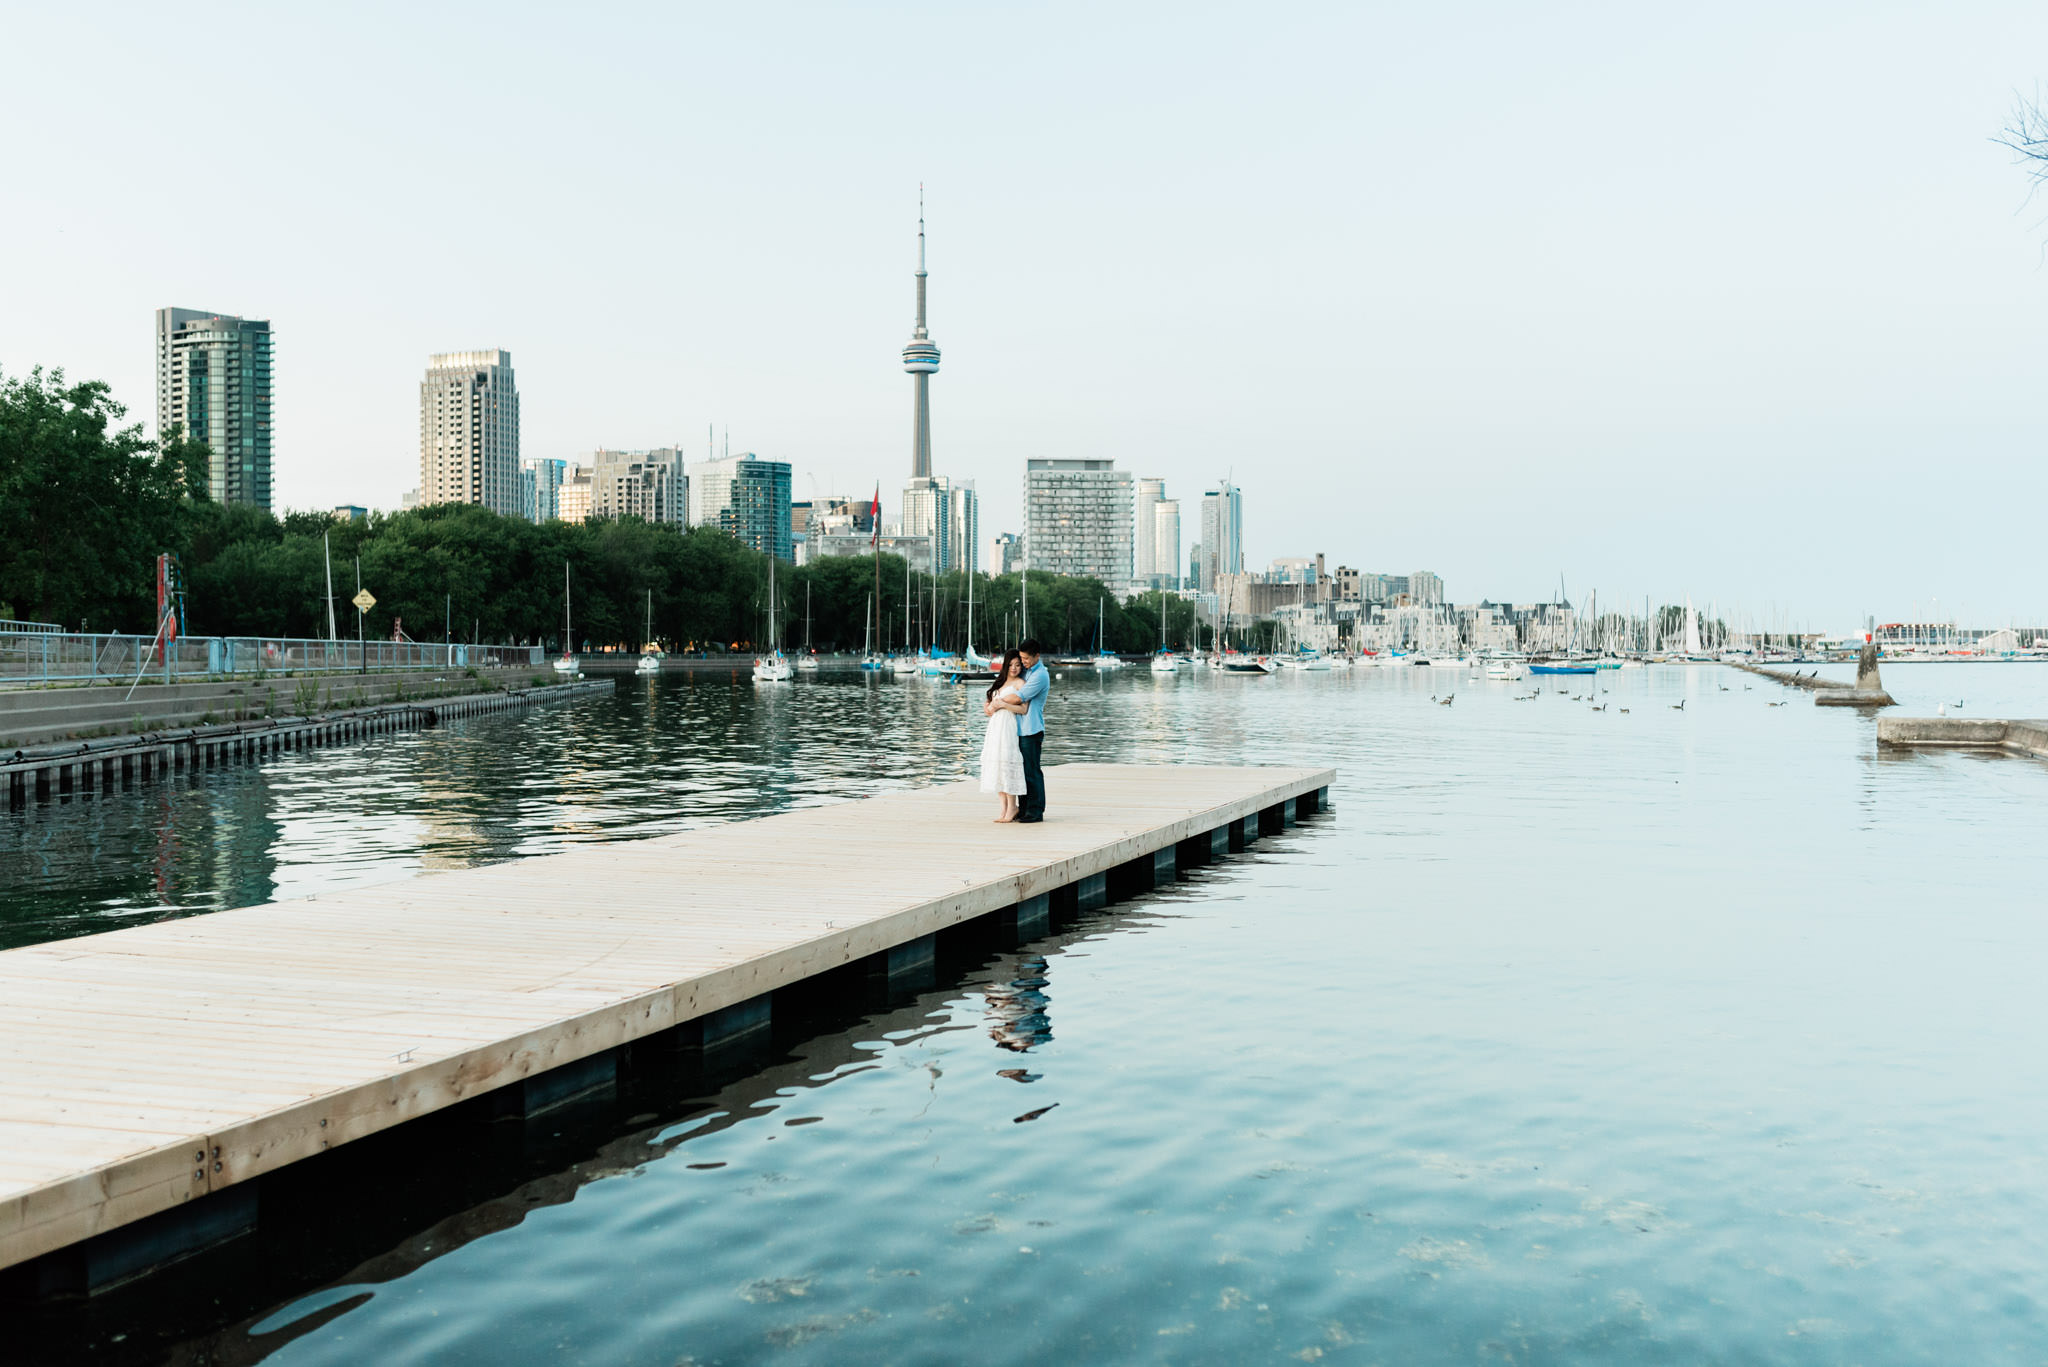 Engagement shoot at a dock in Trillium Park in Ontario Place